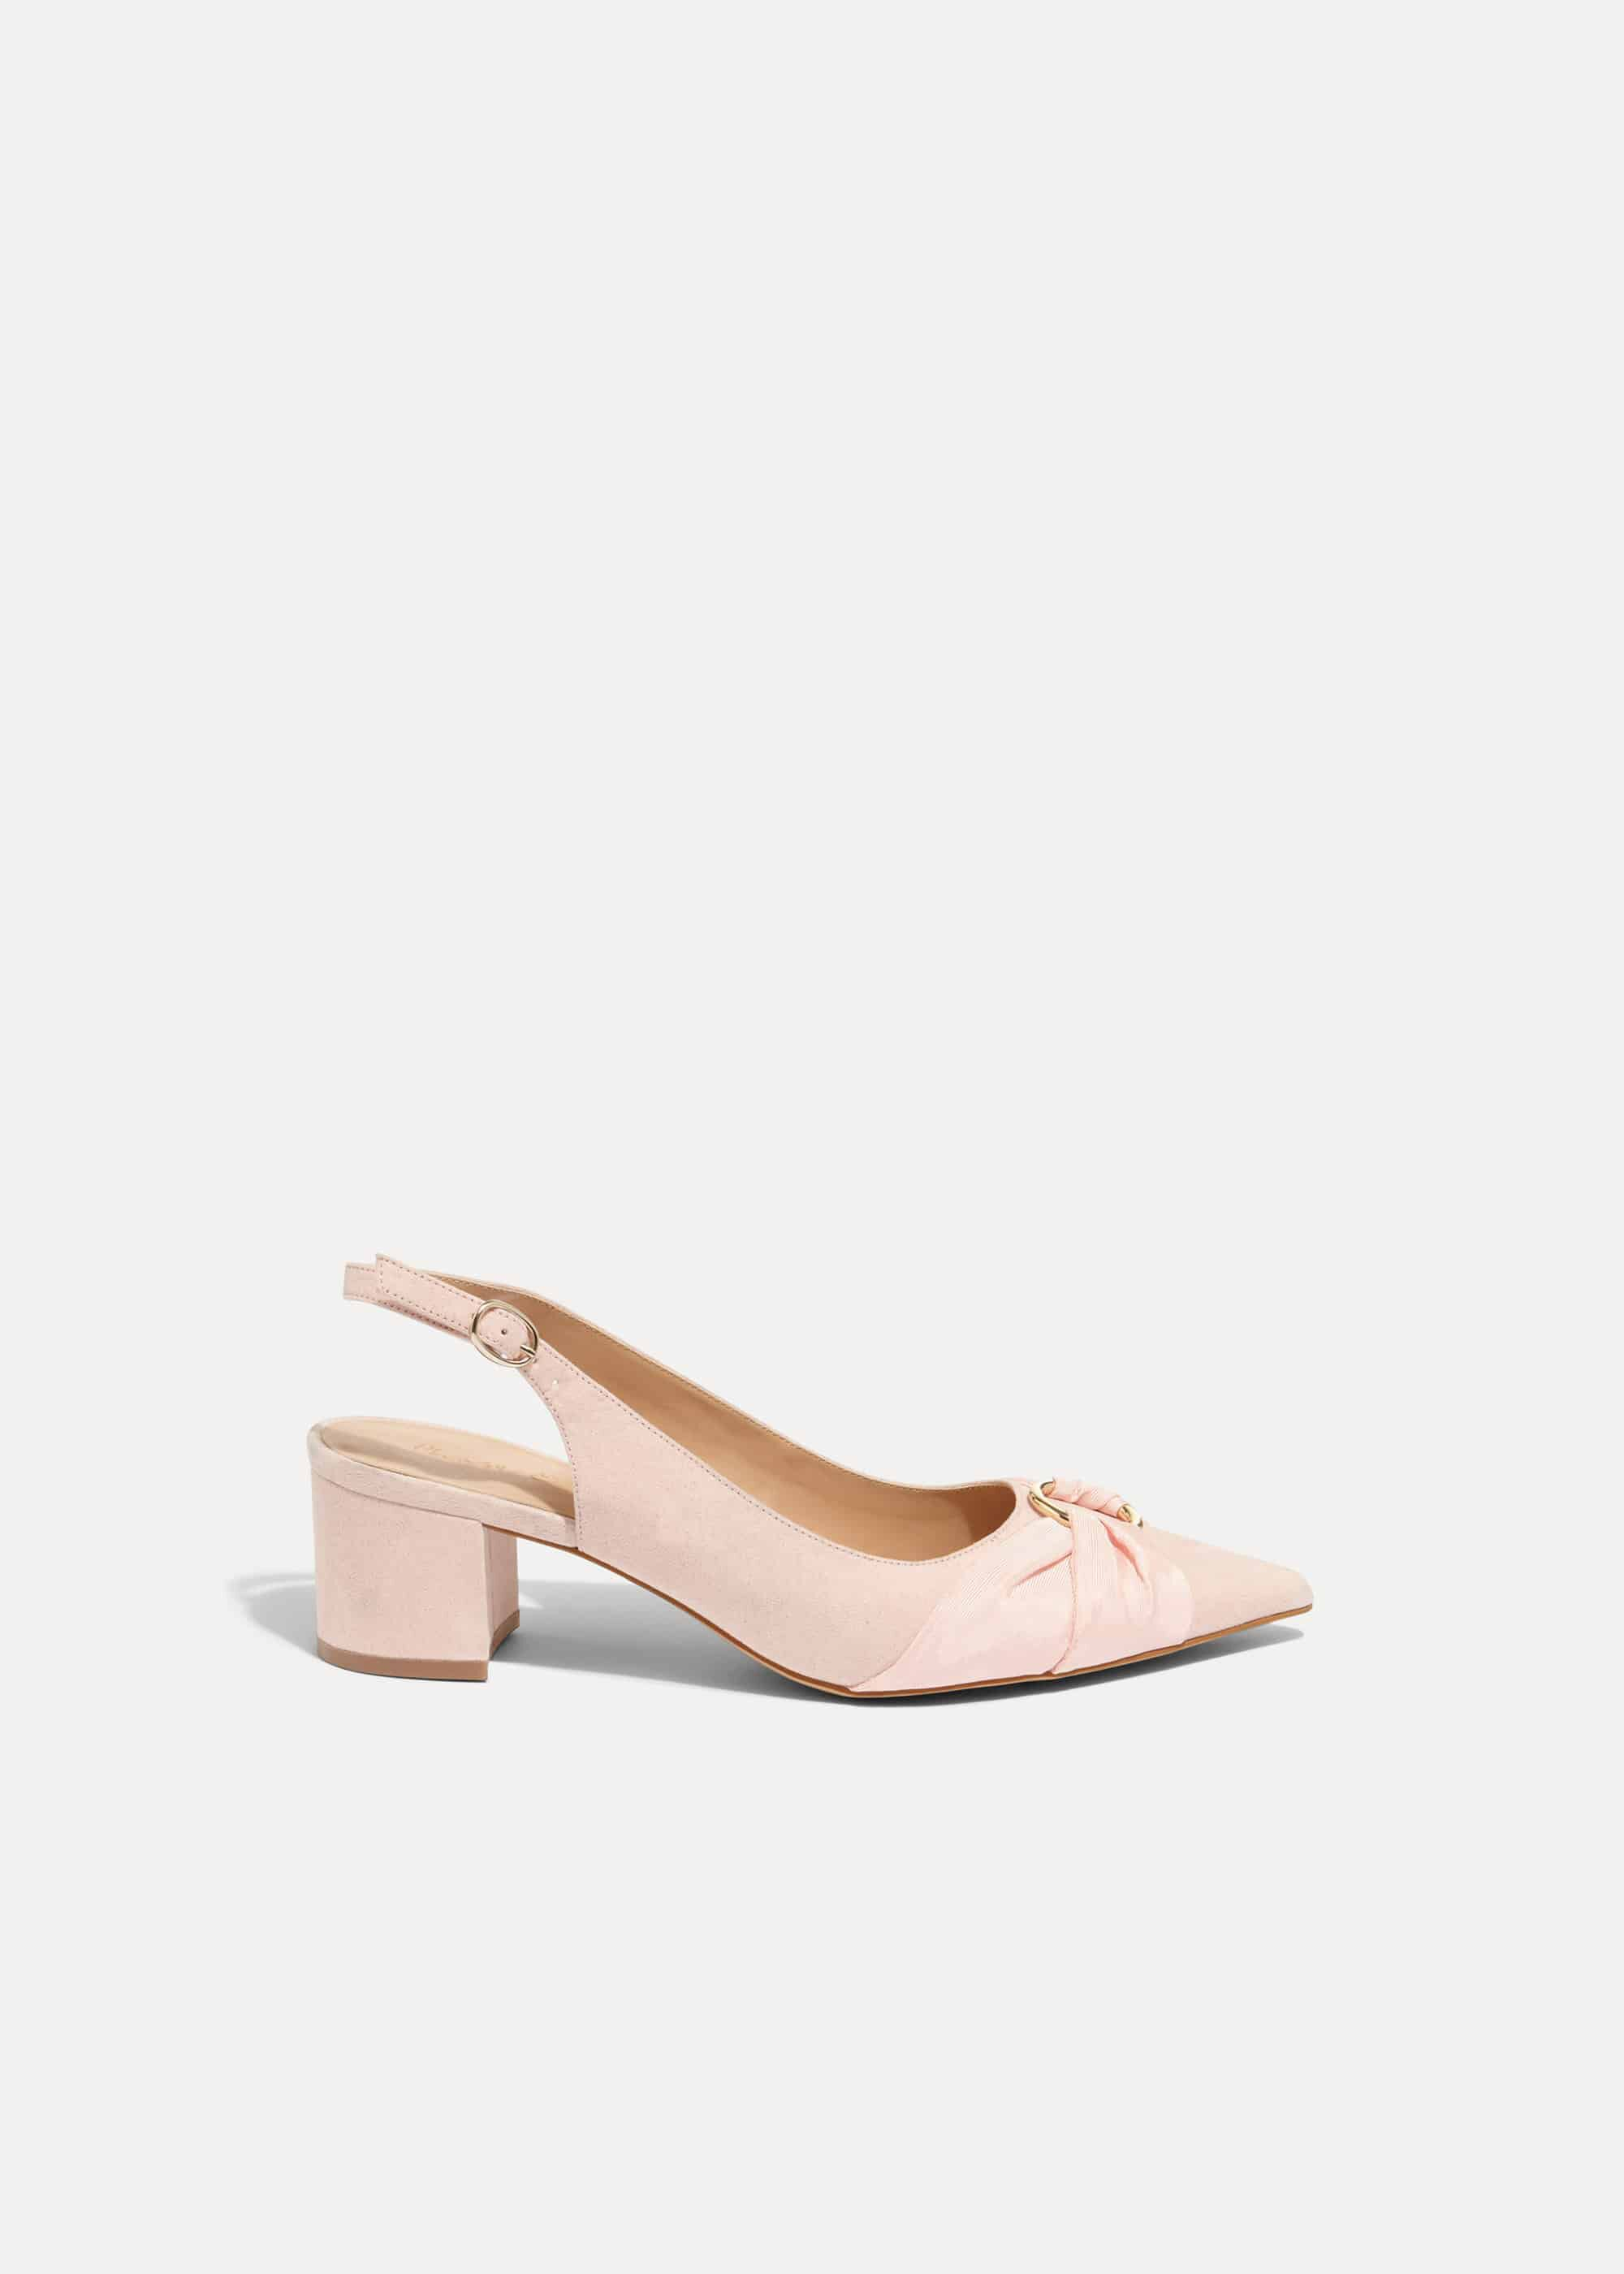 Phase Eight Giselle Block Heel Court Shoes, Pink, High Heels